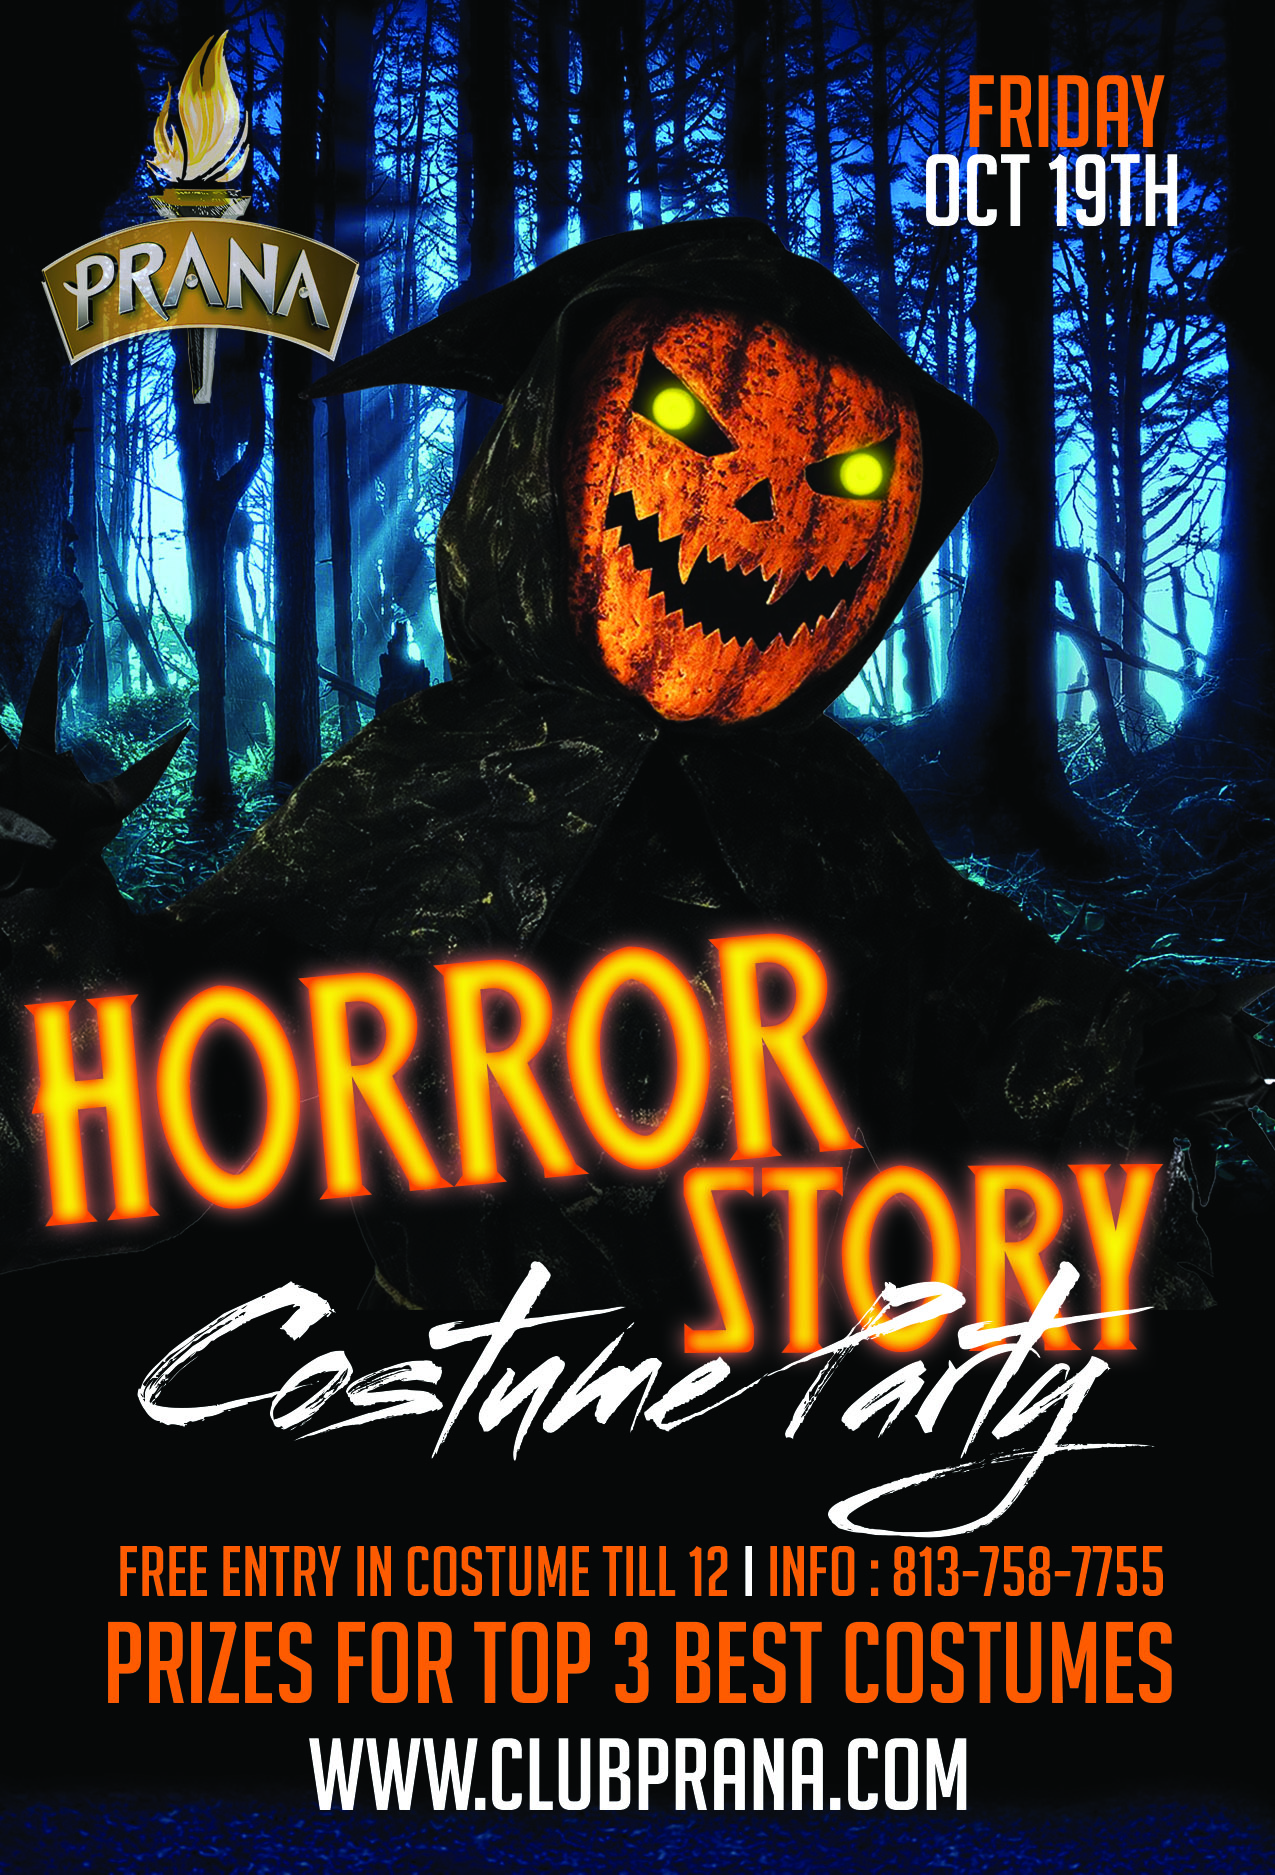 Horror Story Costume Party